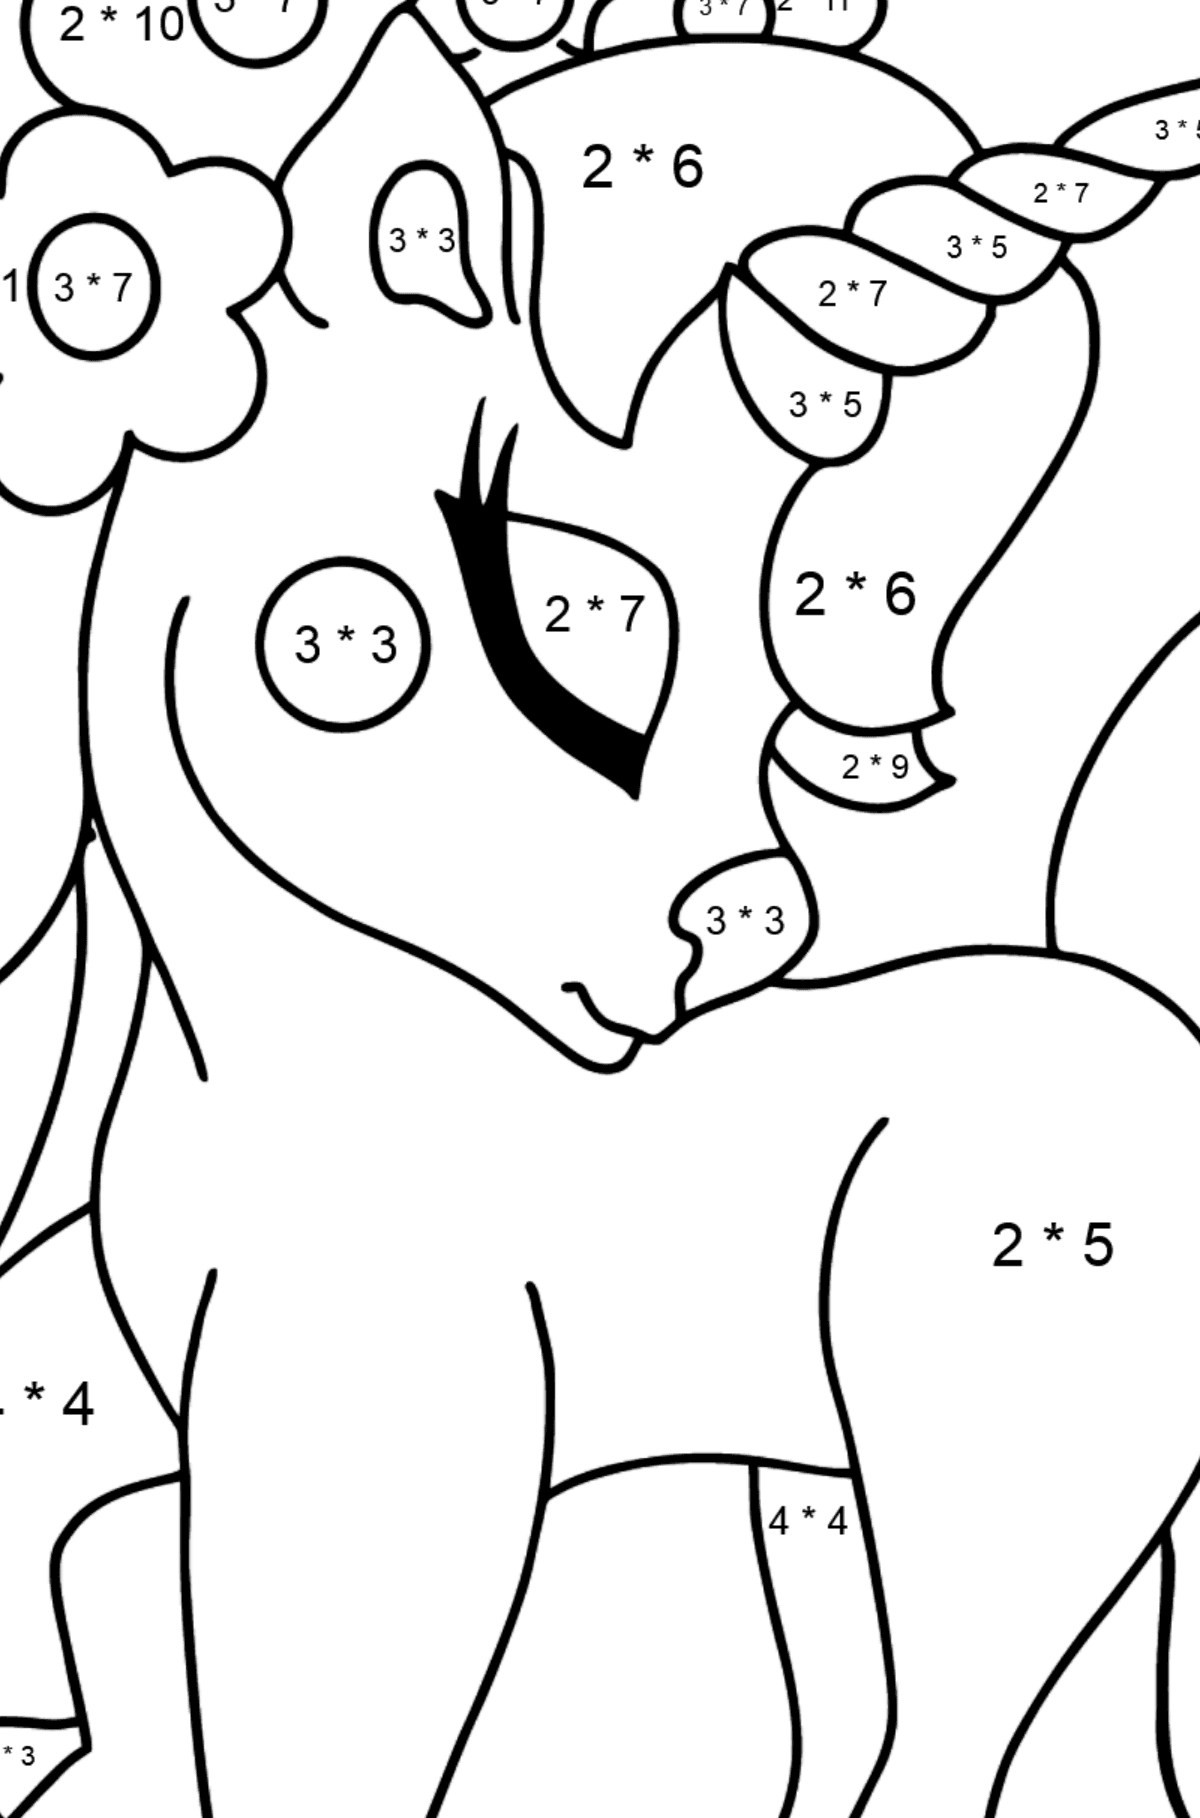 Coloring Page - A Dreamy Unicorn - Math Coloring - Multiplication for Kids